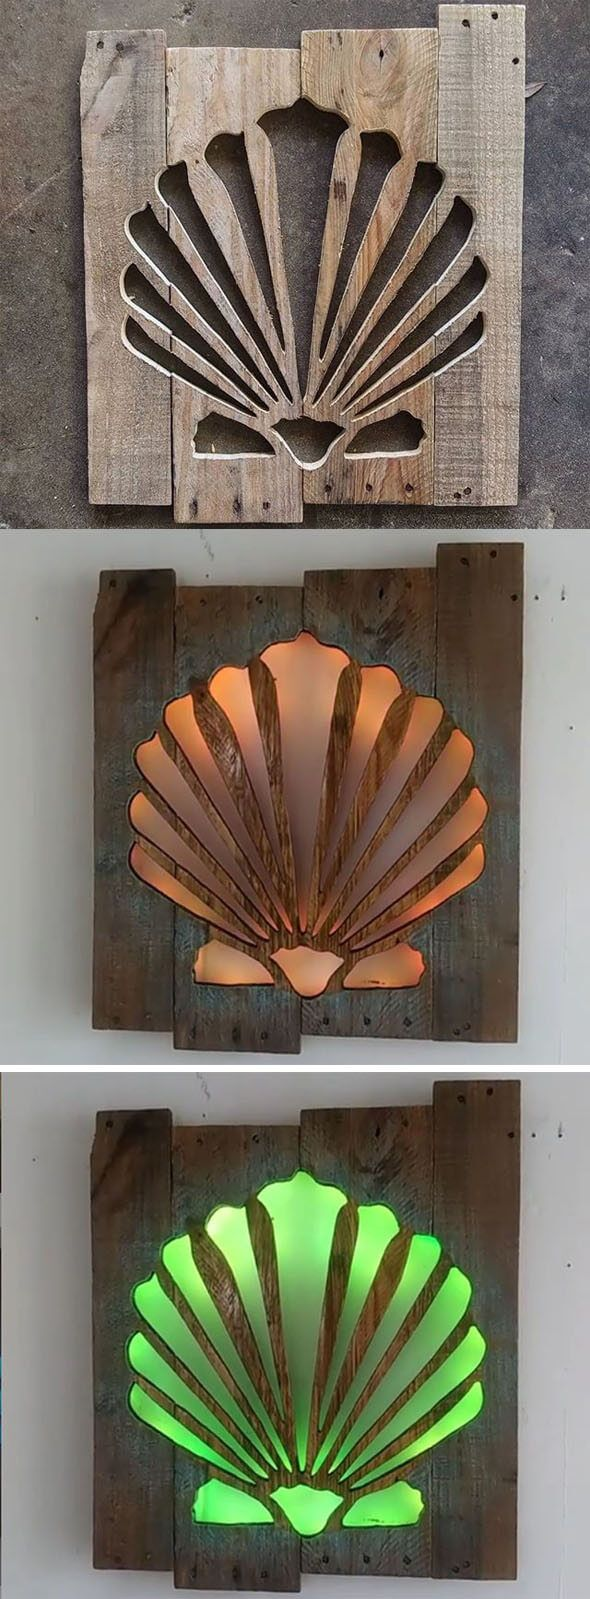 Pallet glowing shell art